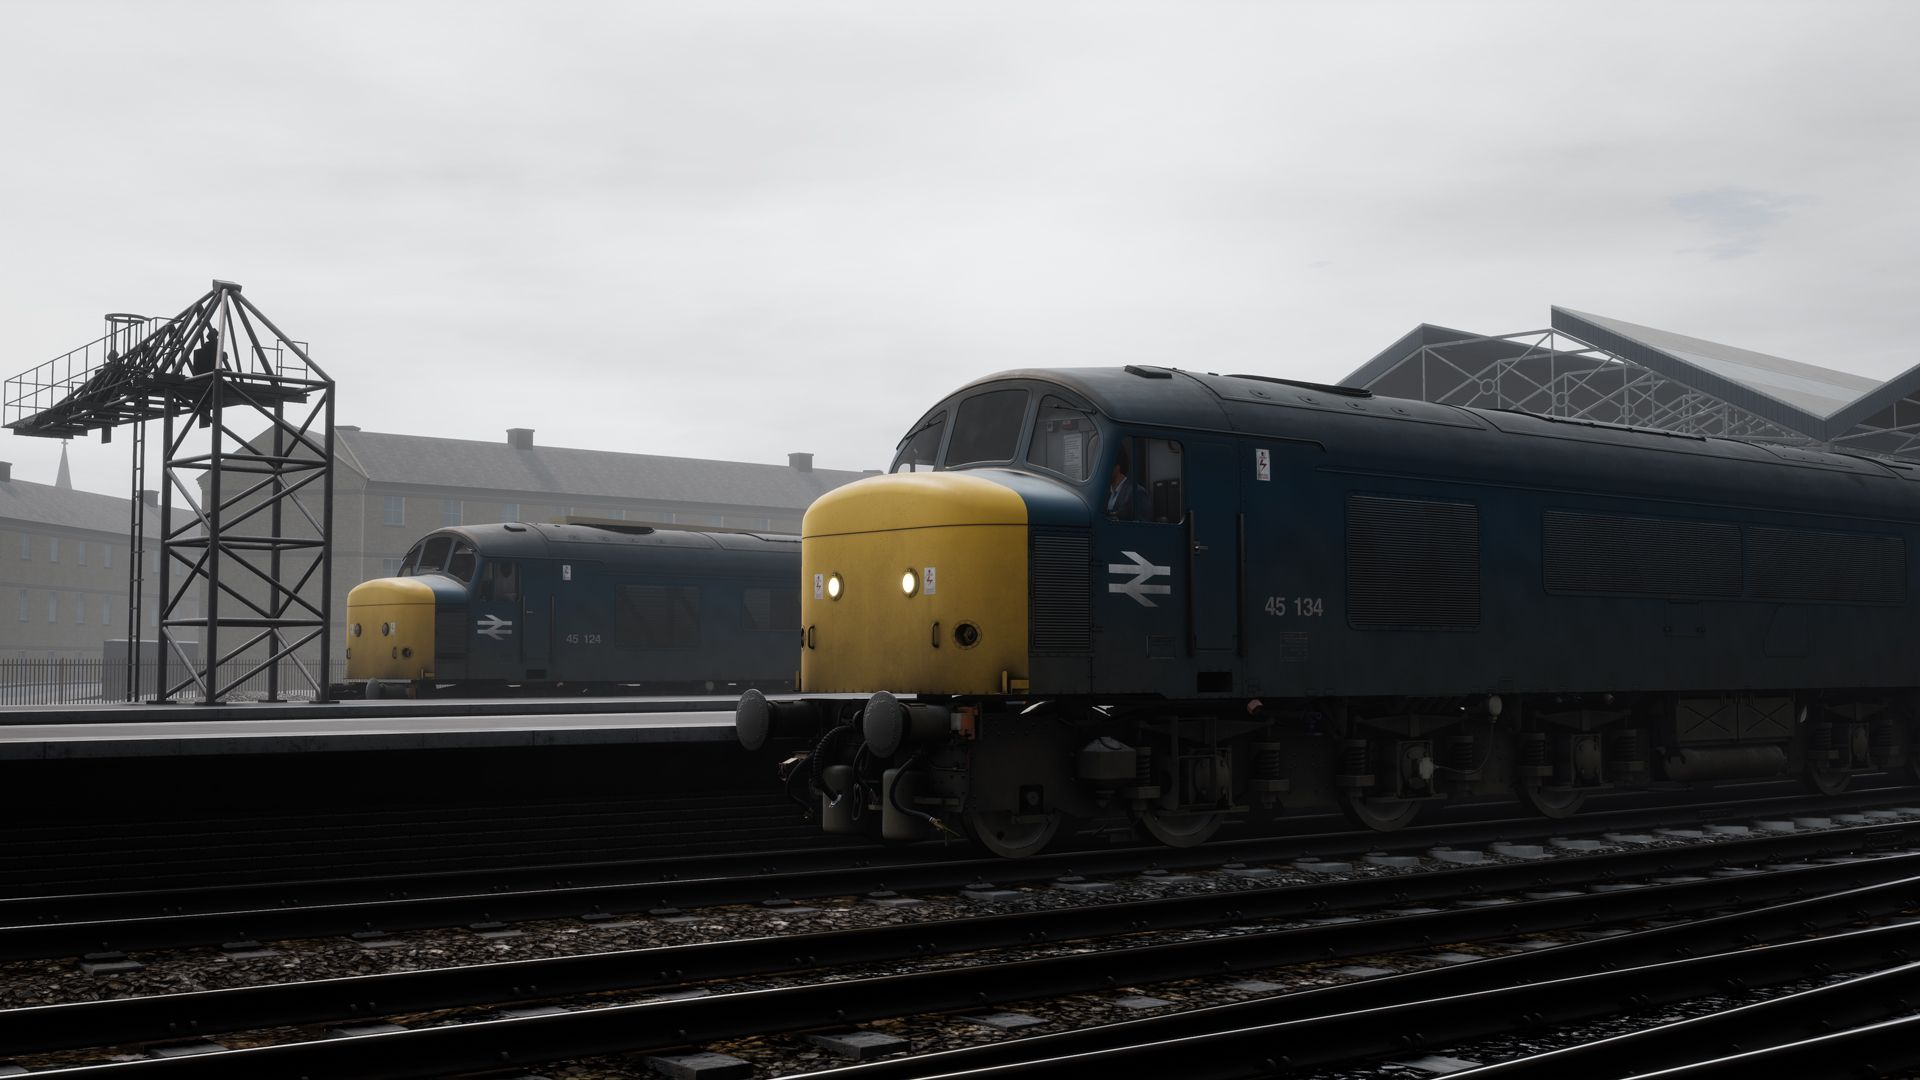 Image showing screenshot of Class 45 locomotive in Train Sim World